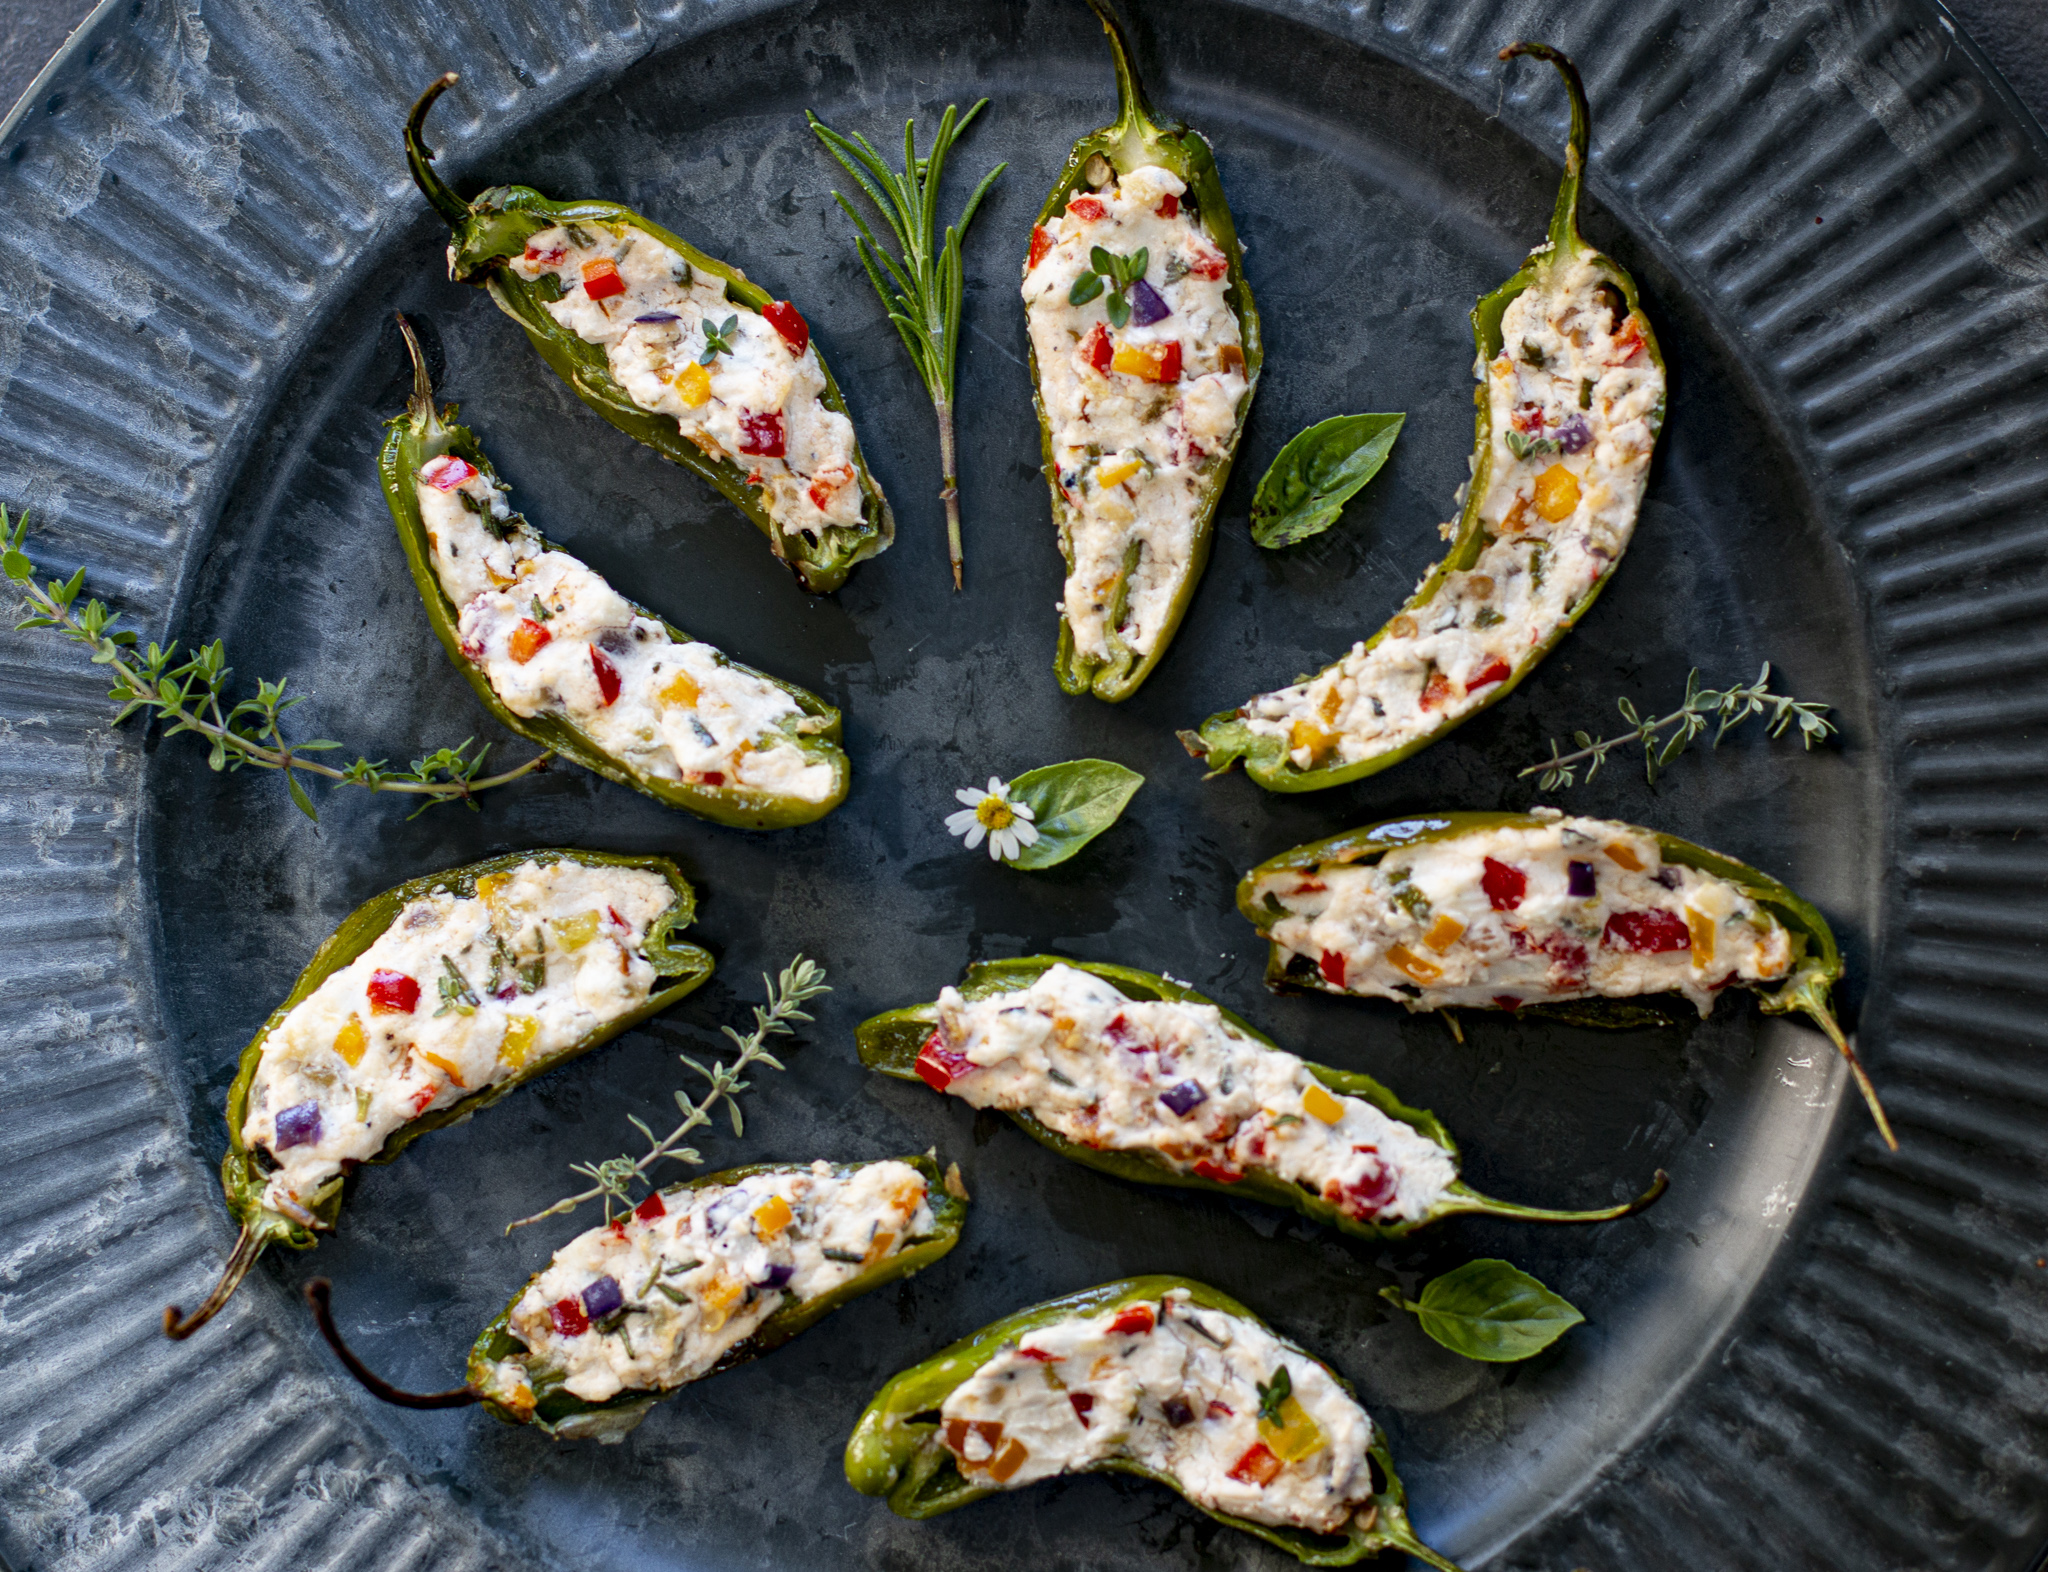 Mediterranean Stuffed Shishito Peppers